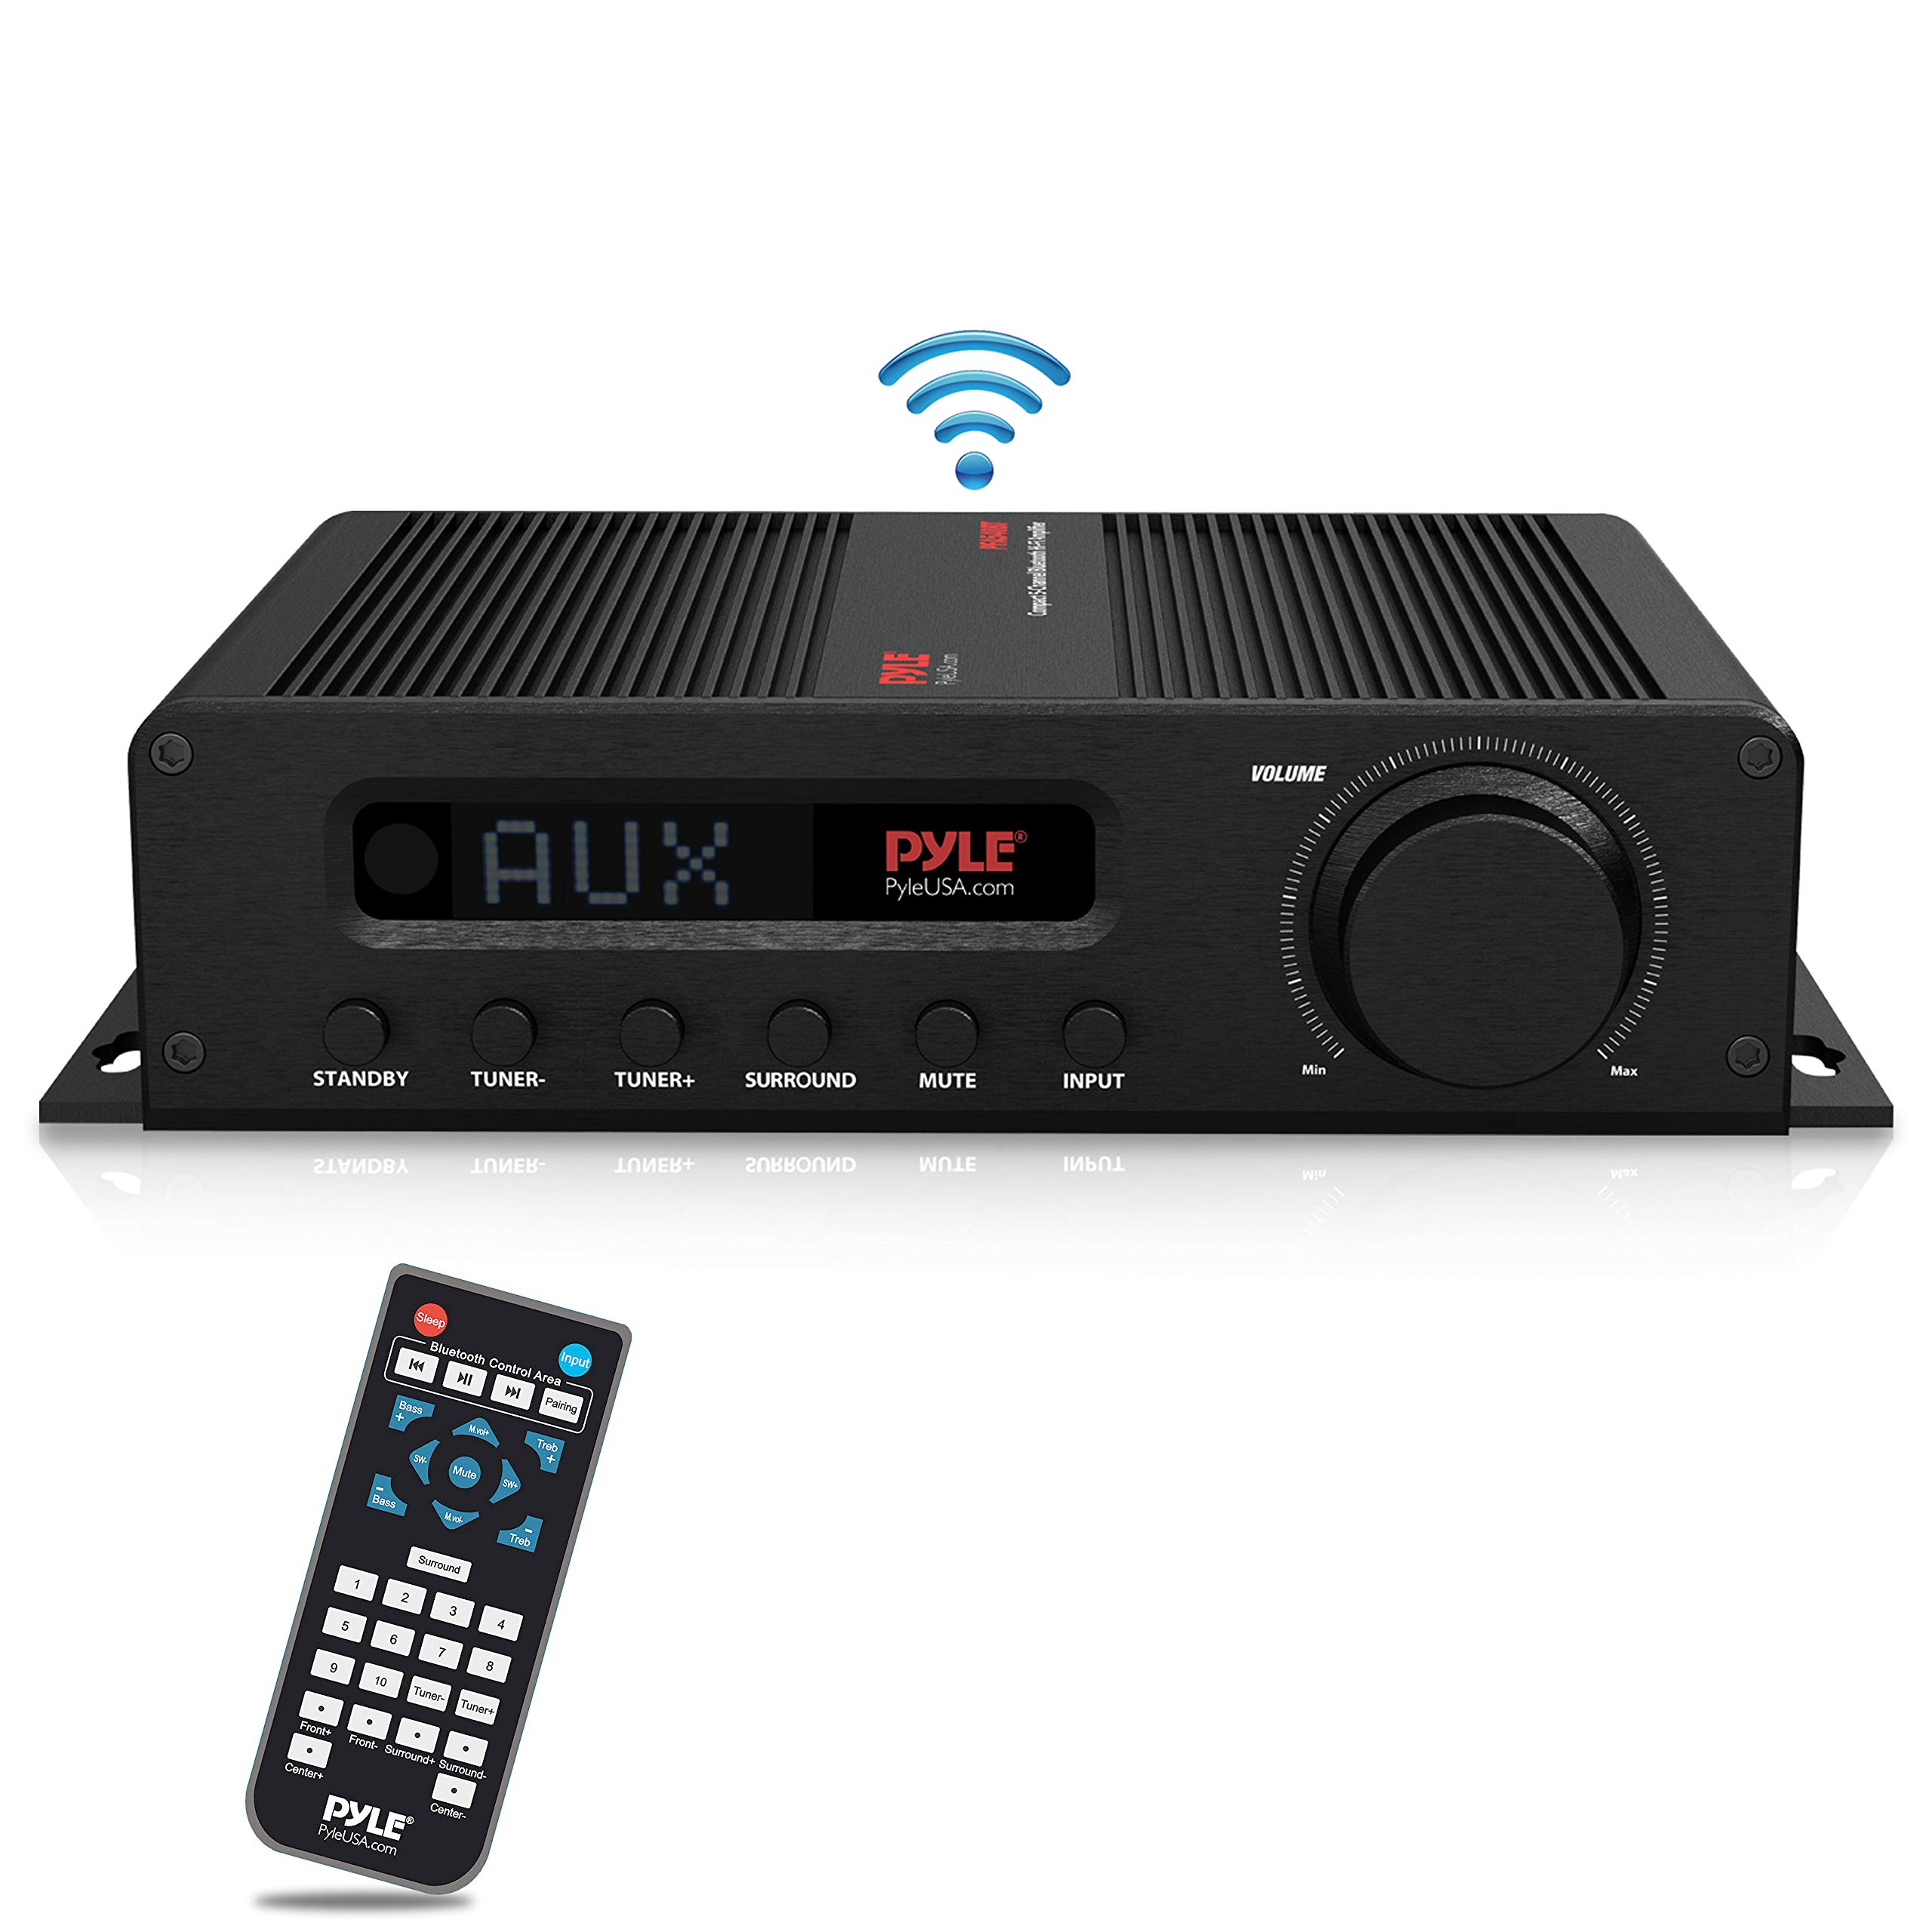 Wireless Bluetooth Home Audio Amplifier - 100W 5 Channel Home Theater Power Stereo Receiver, Surround Sound w/ HDMI, AUX, FM Antenna, Subwoofer Speaker Input, 12V Adapter - Pyle PFA540BT by Pyle